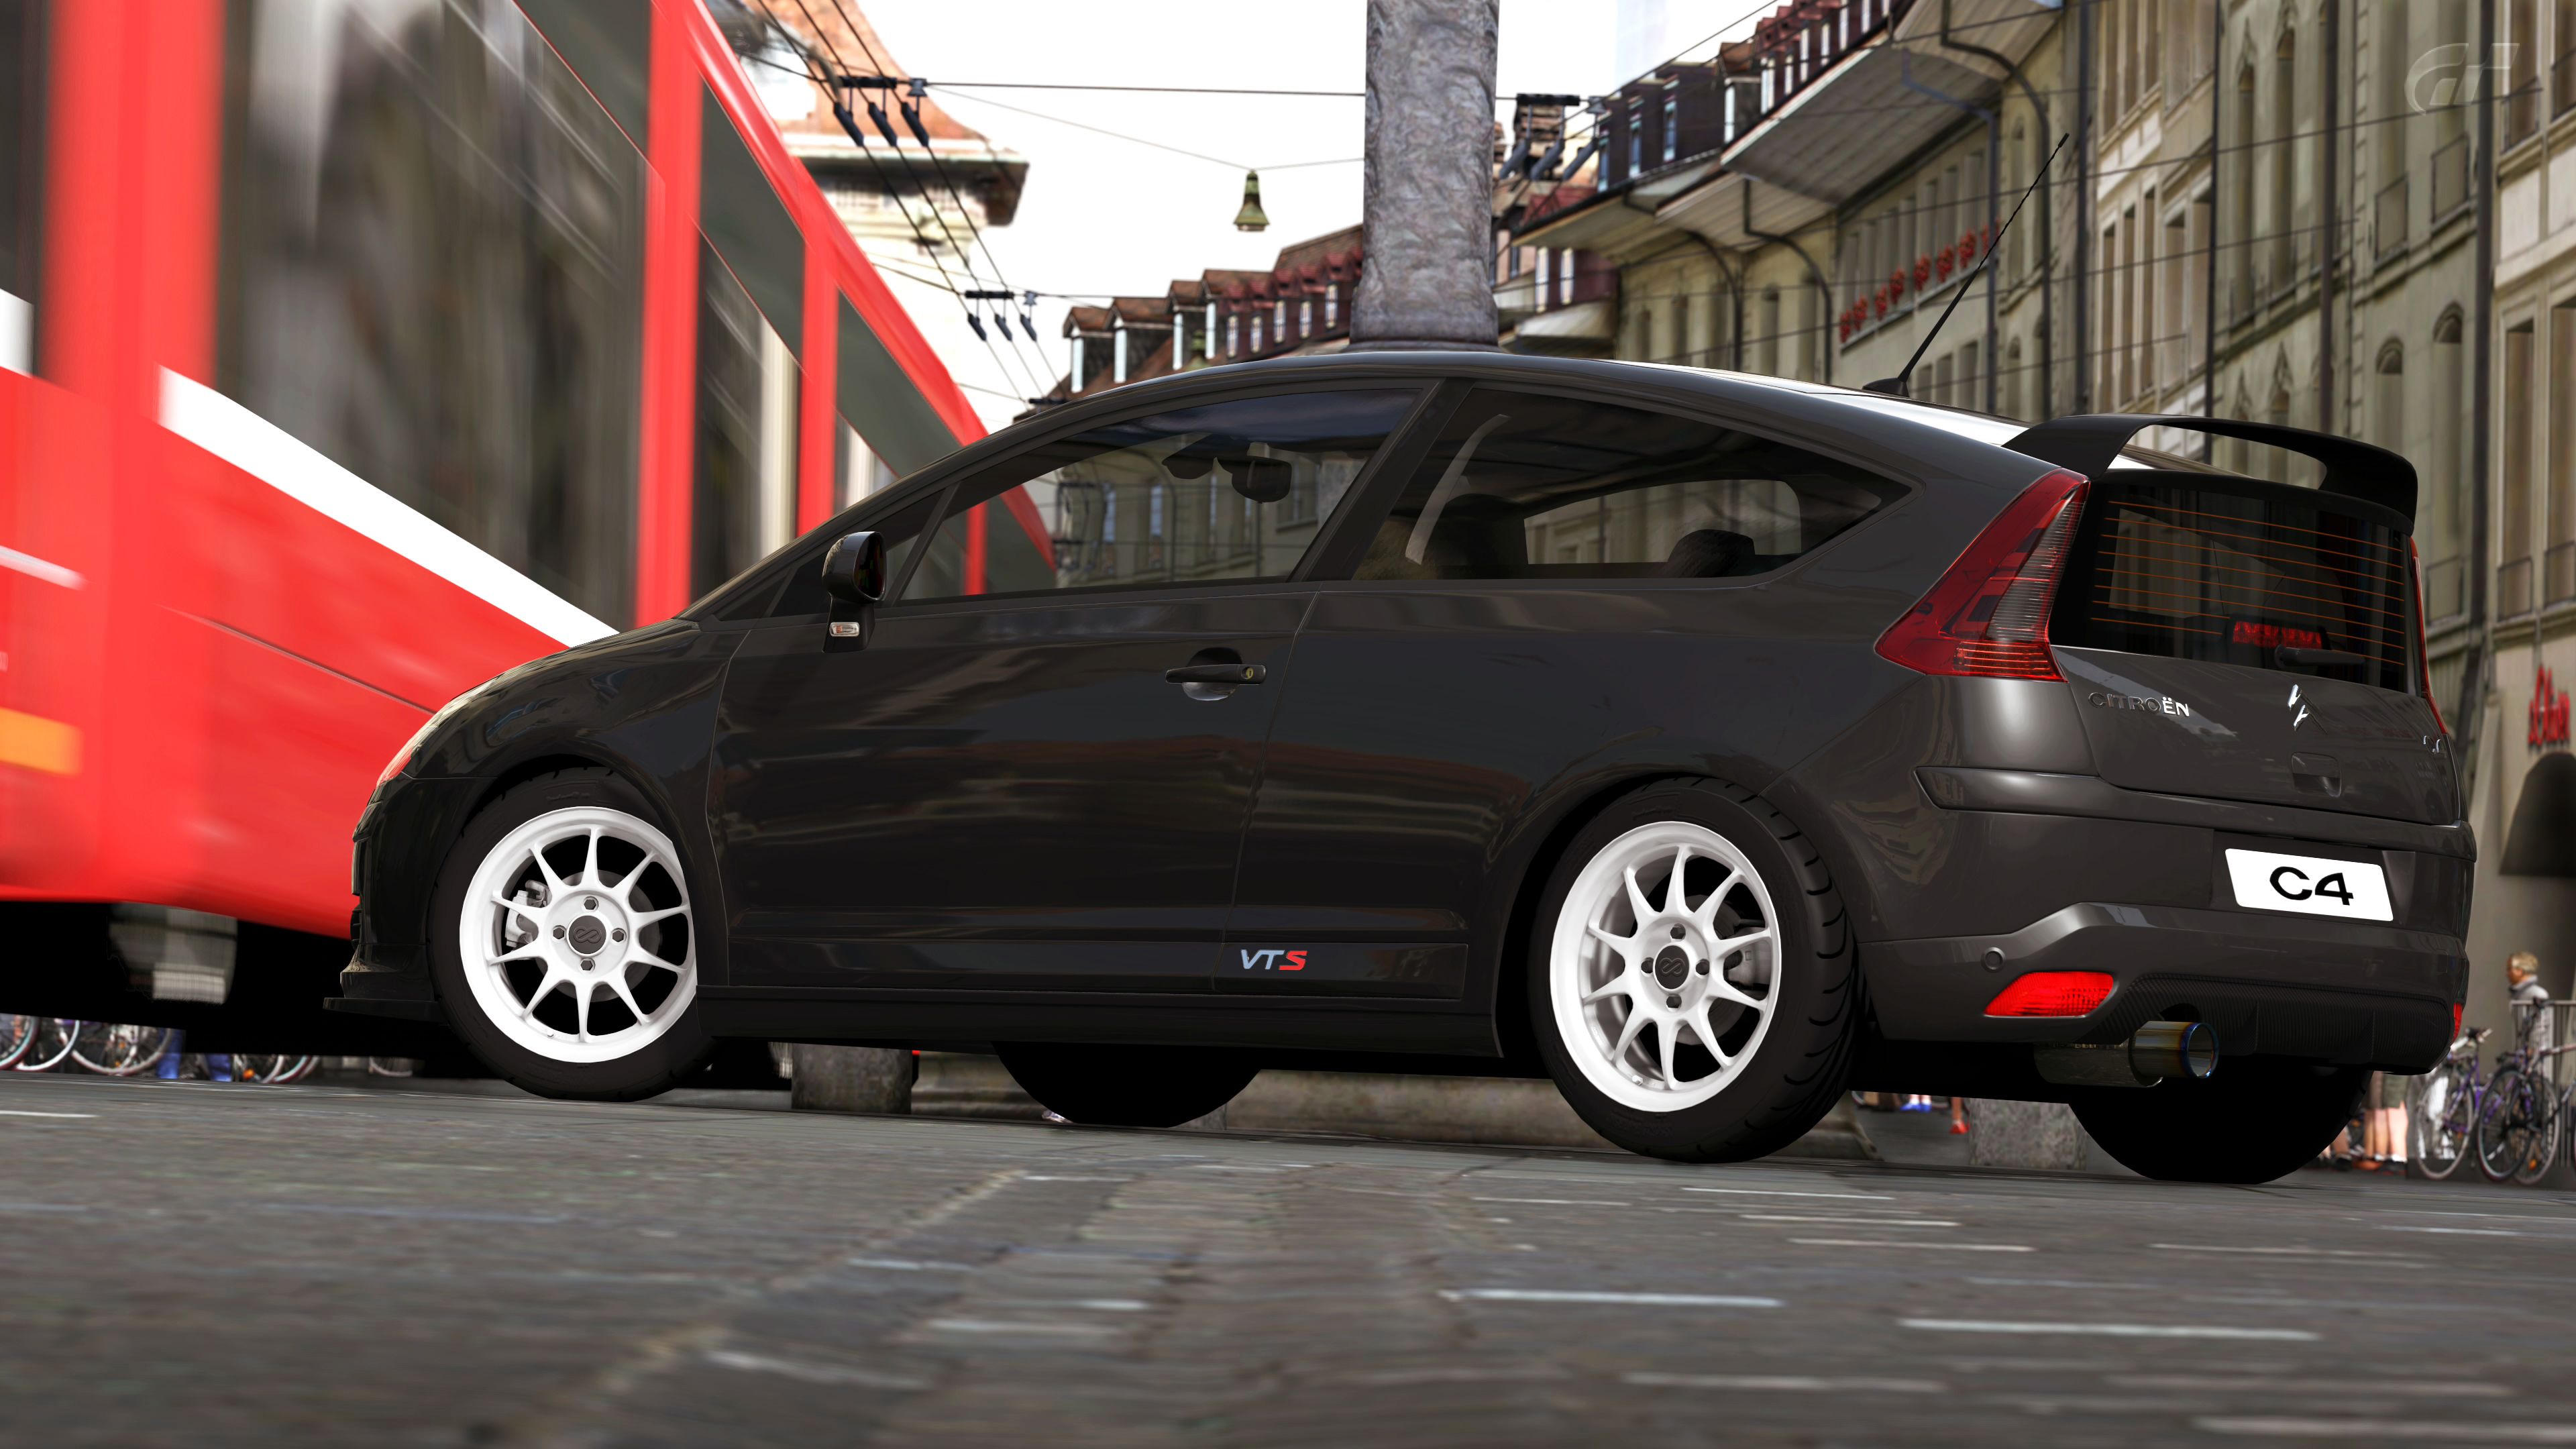 2005 citroen c4 coupe 2 0vts gran turismo 5 by. Black Bedroom Furniture Sets. Home Design Ideas